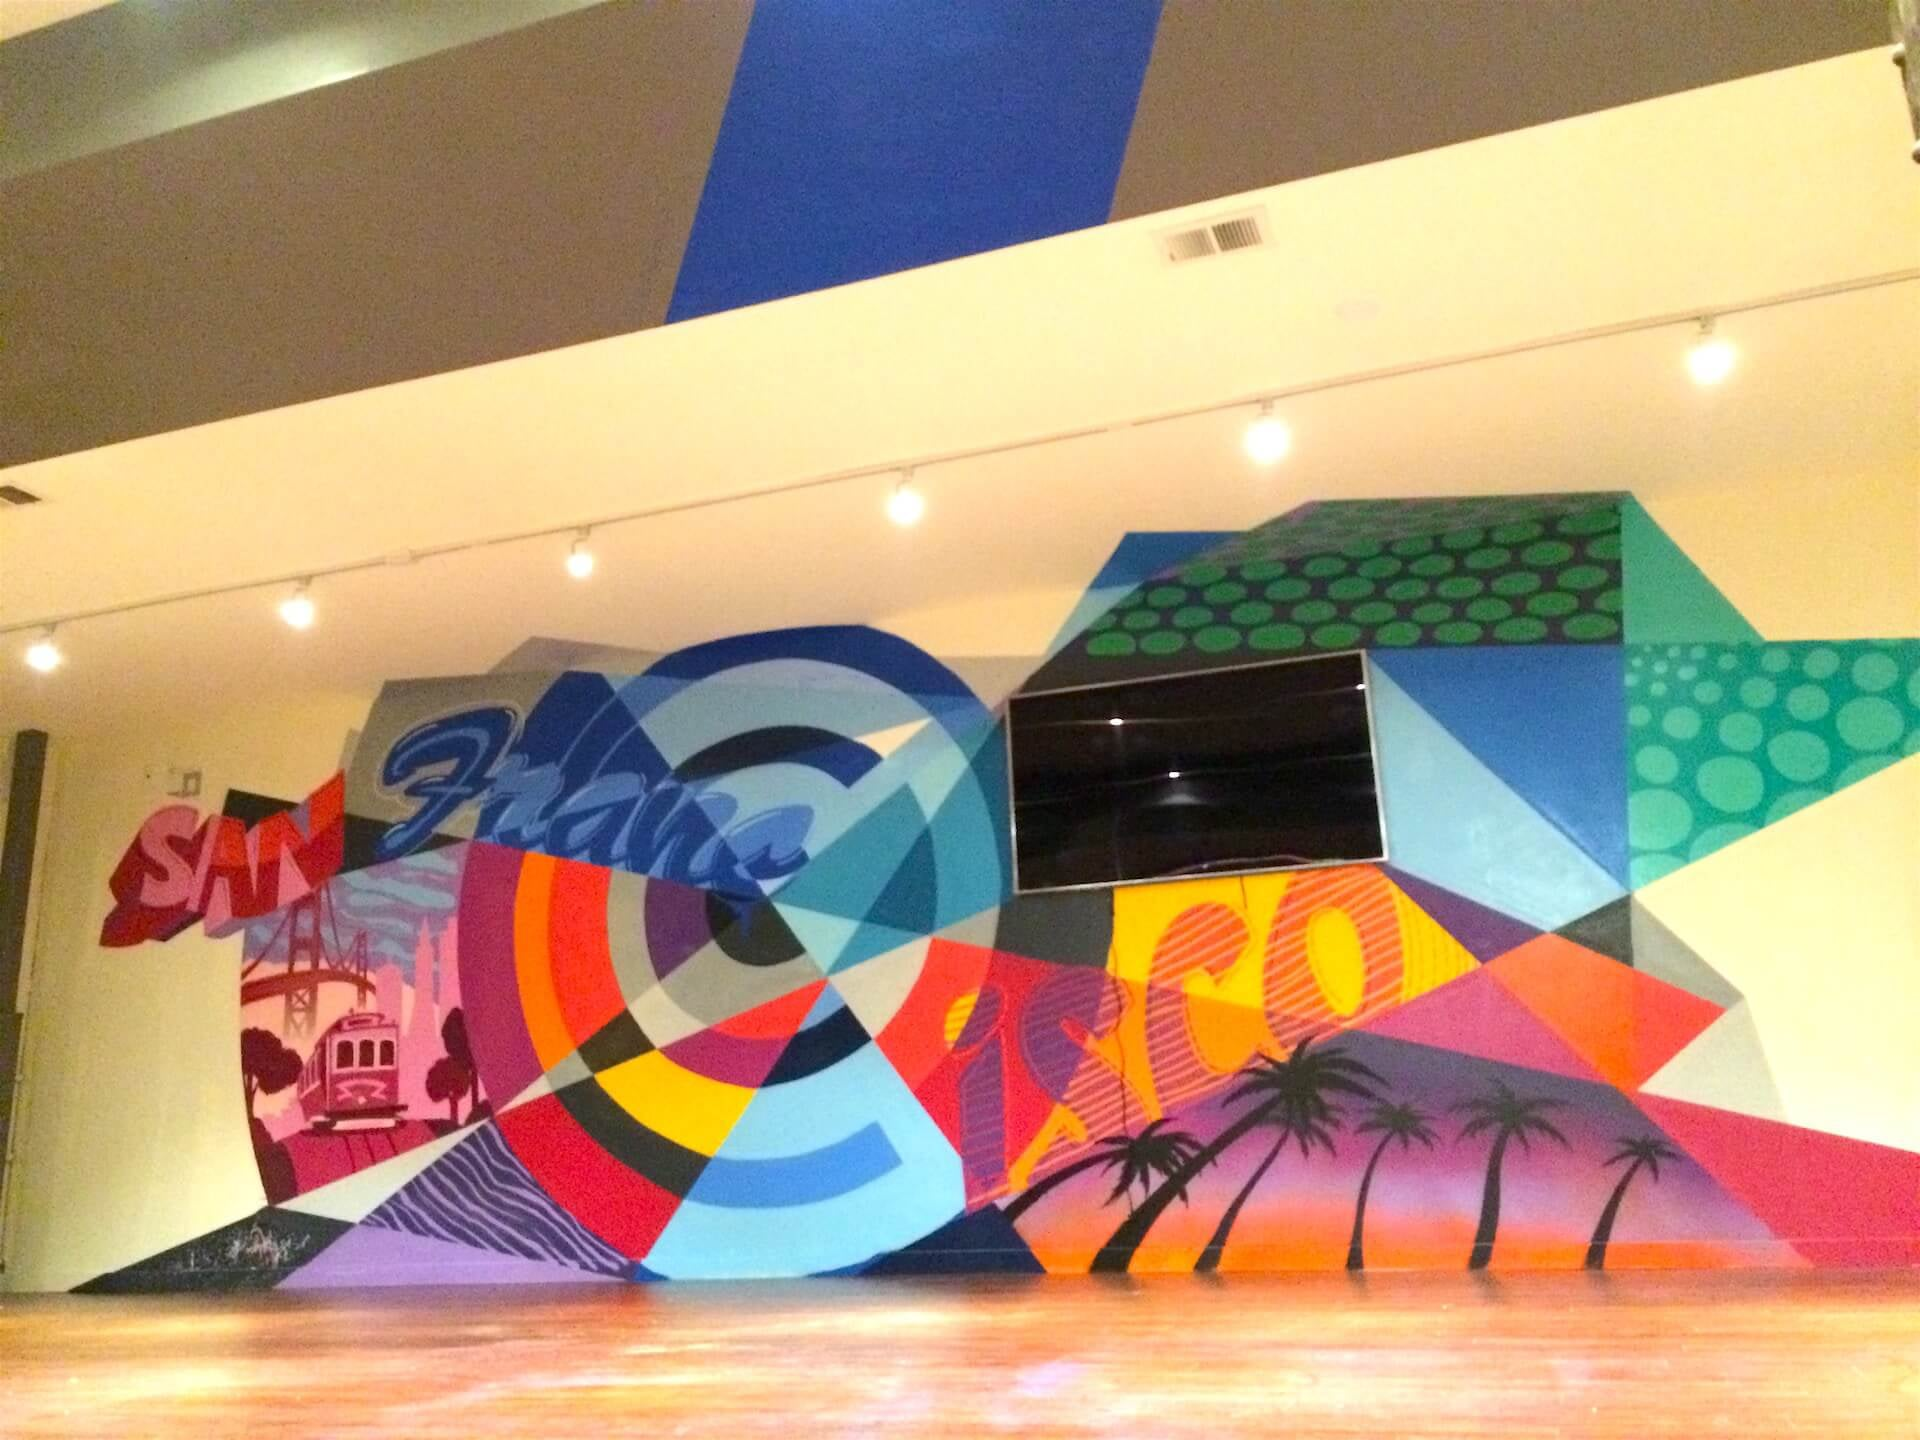 Commissioned Office Mural 2 for Chronicled | SOMA San Francisco USA, 2015